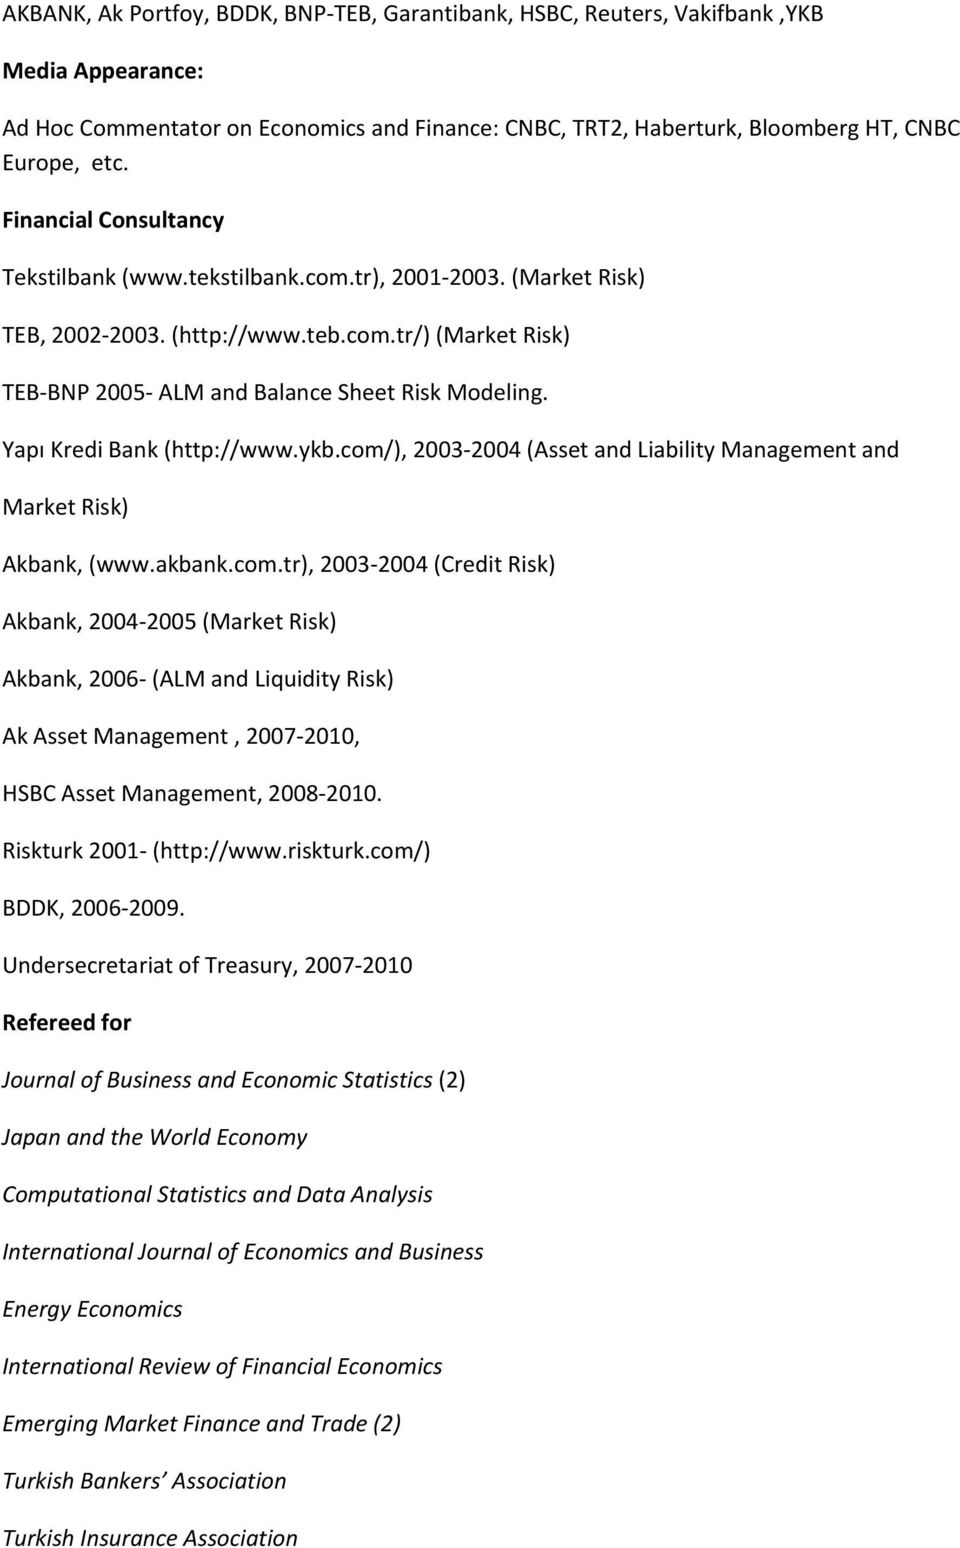 Yapı Kredi Bank (http://www.ykb.com/), 2003 2004 (Asset and Liability Management and Market Risk) Akbank, (www.akbank.com.tr), 2003 2004 (Credit Risk) Akbank, 2004 2005 (Market Risk) Akbank, 2006 (ALM and Liquidity Risk) Ak Asset Management, 2007 2010, HSBC Asset Management, 2008 2010.